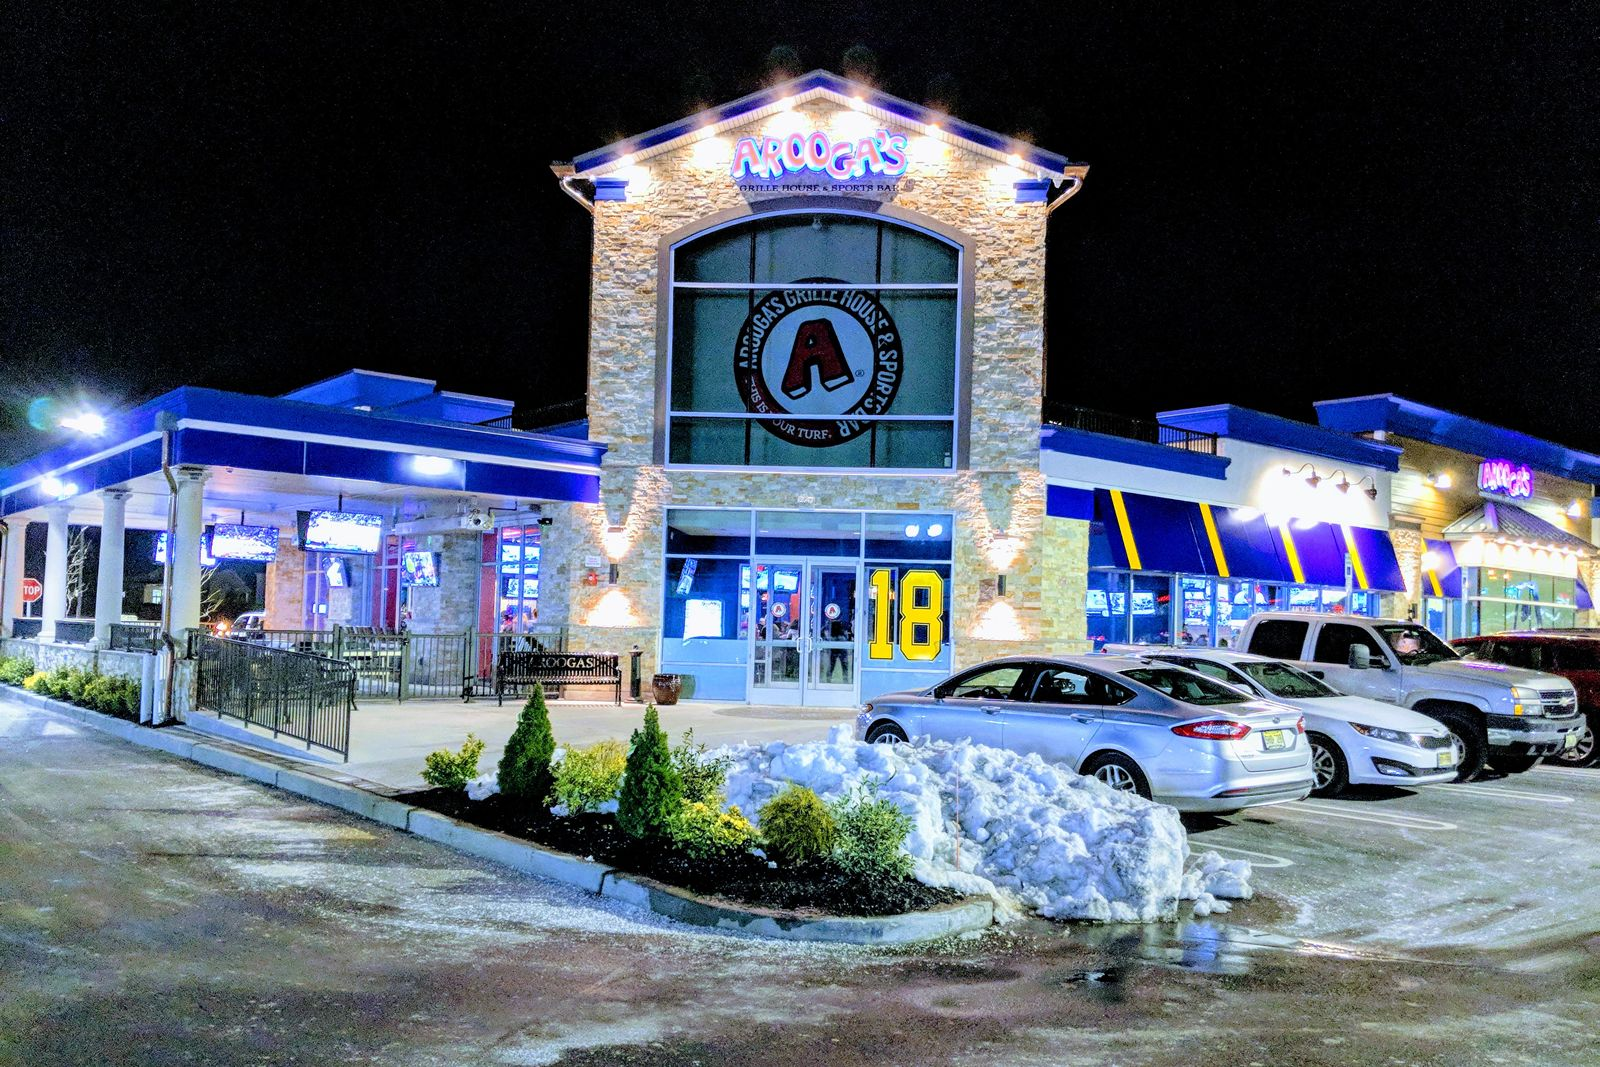 Arooga's Grille House & Sports Bar Ranked A Top Franchise for Fourth Consecutive Year in Entrepreneur's Franchise 500 2020